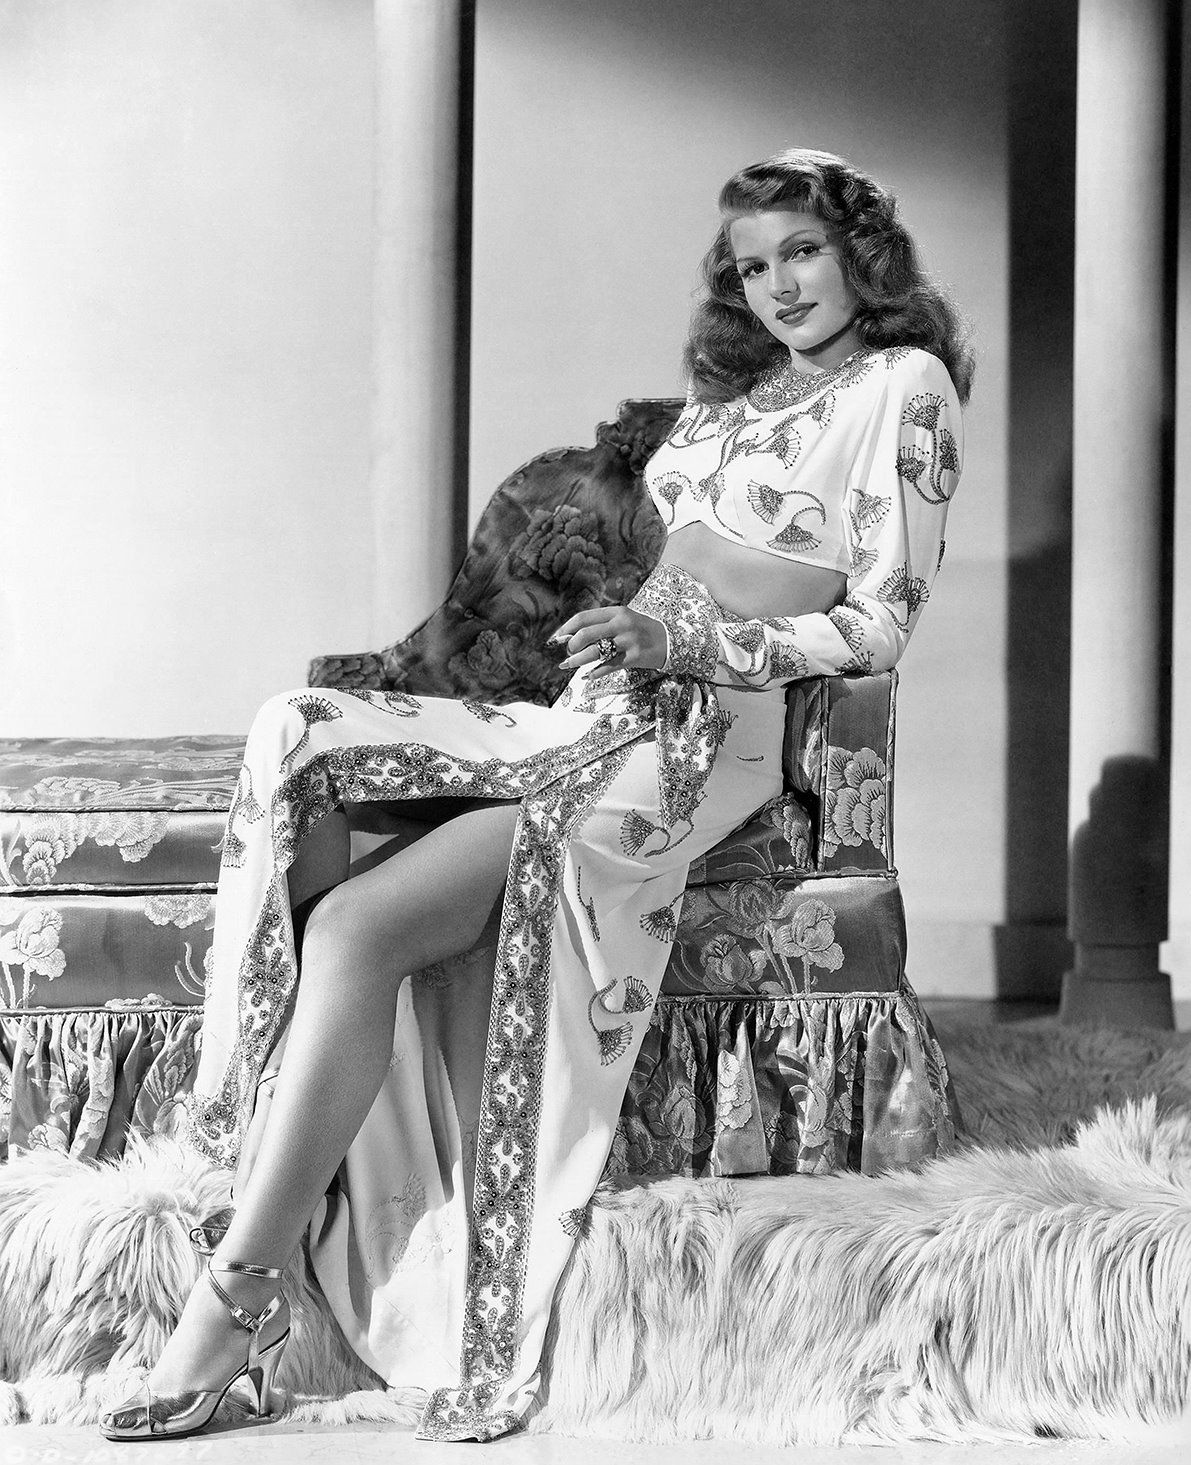 Rita Hayworth - Wallpaper